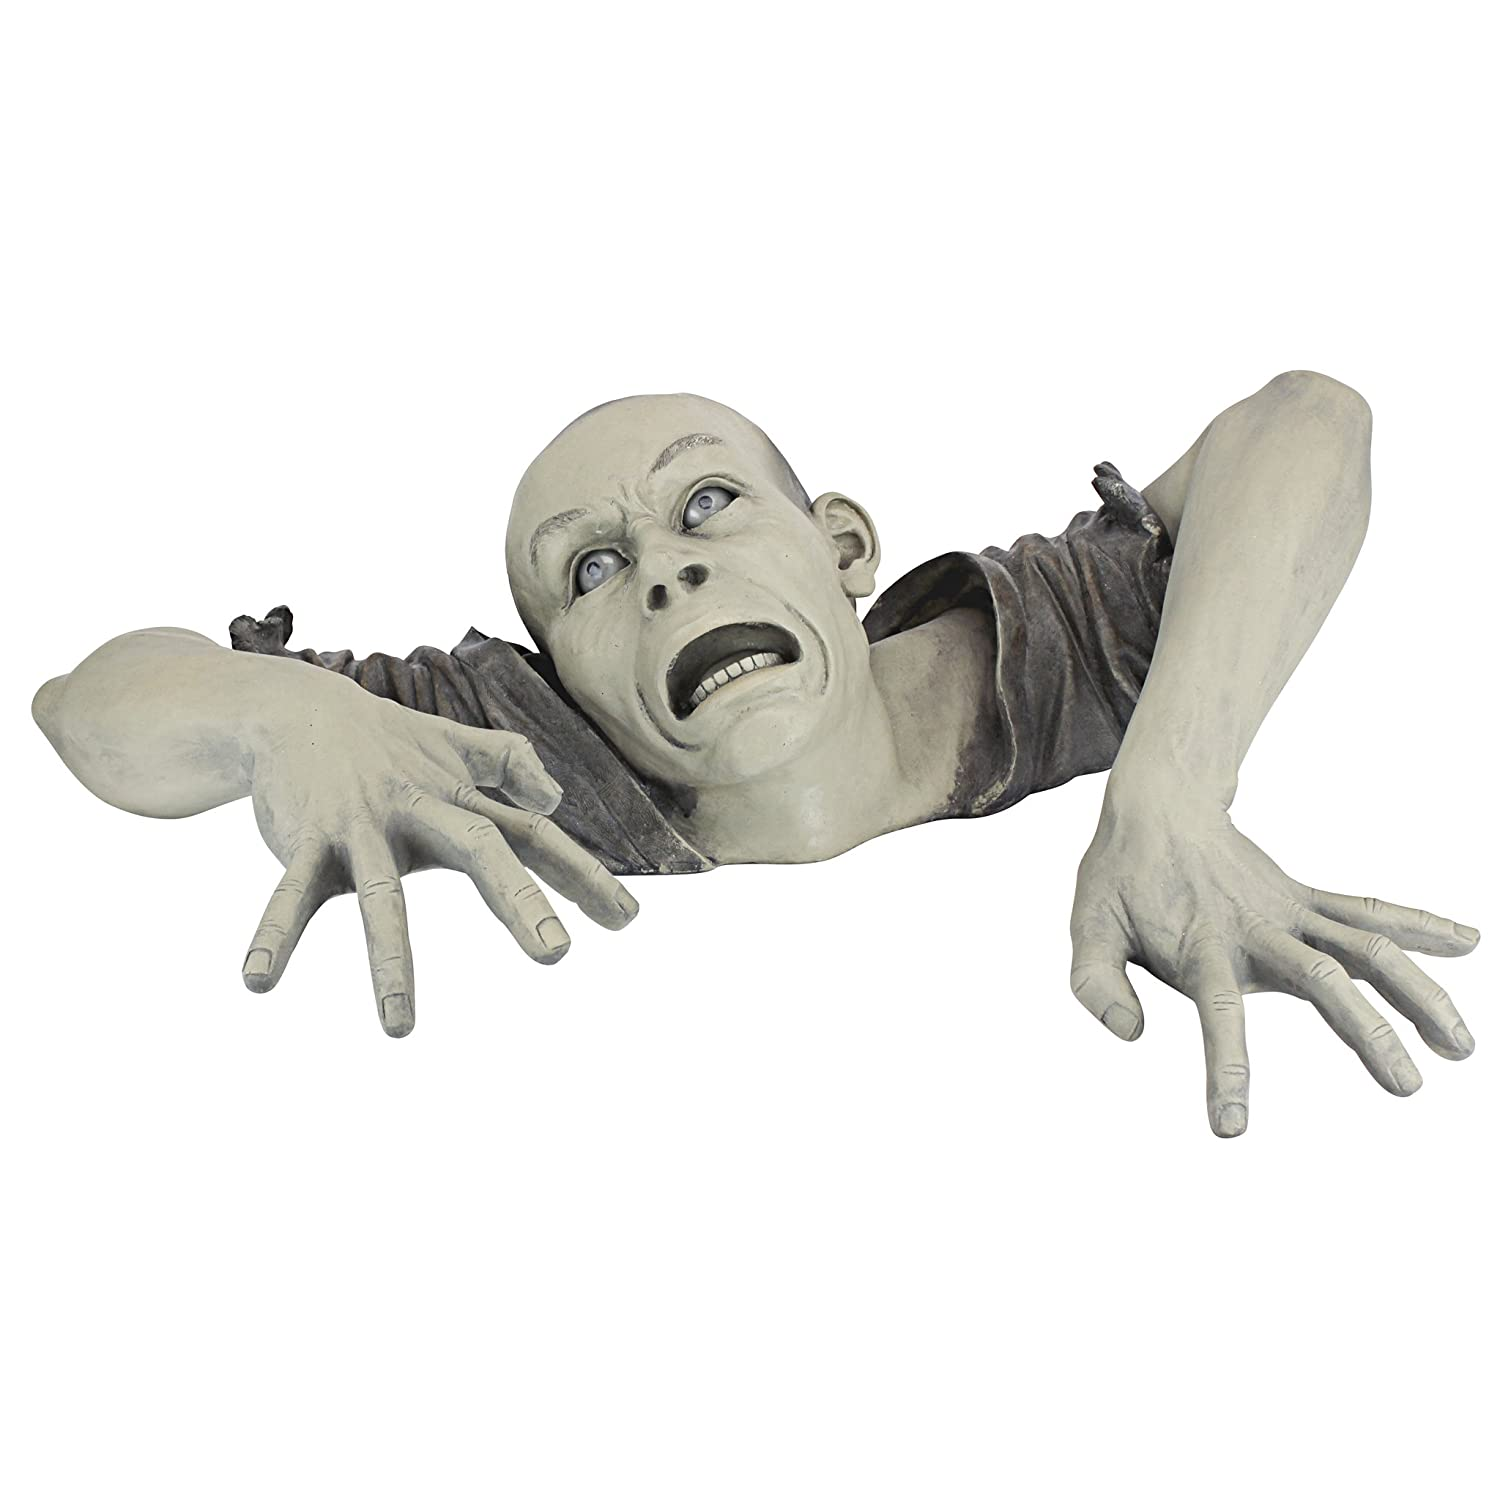 Design Toscano The Zombie of Montclaire Moors Garden Statue - Zombie Decorations - Zombie Statue - Halloween Decoration